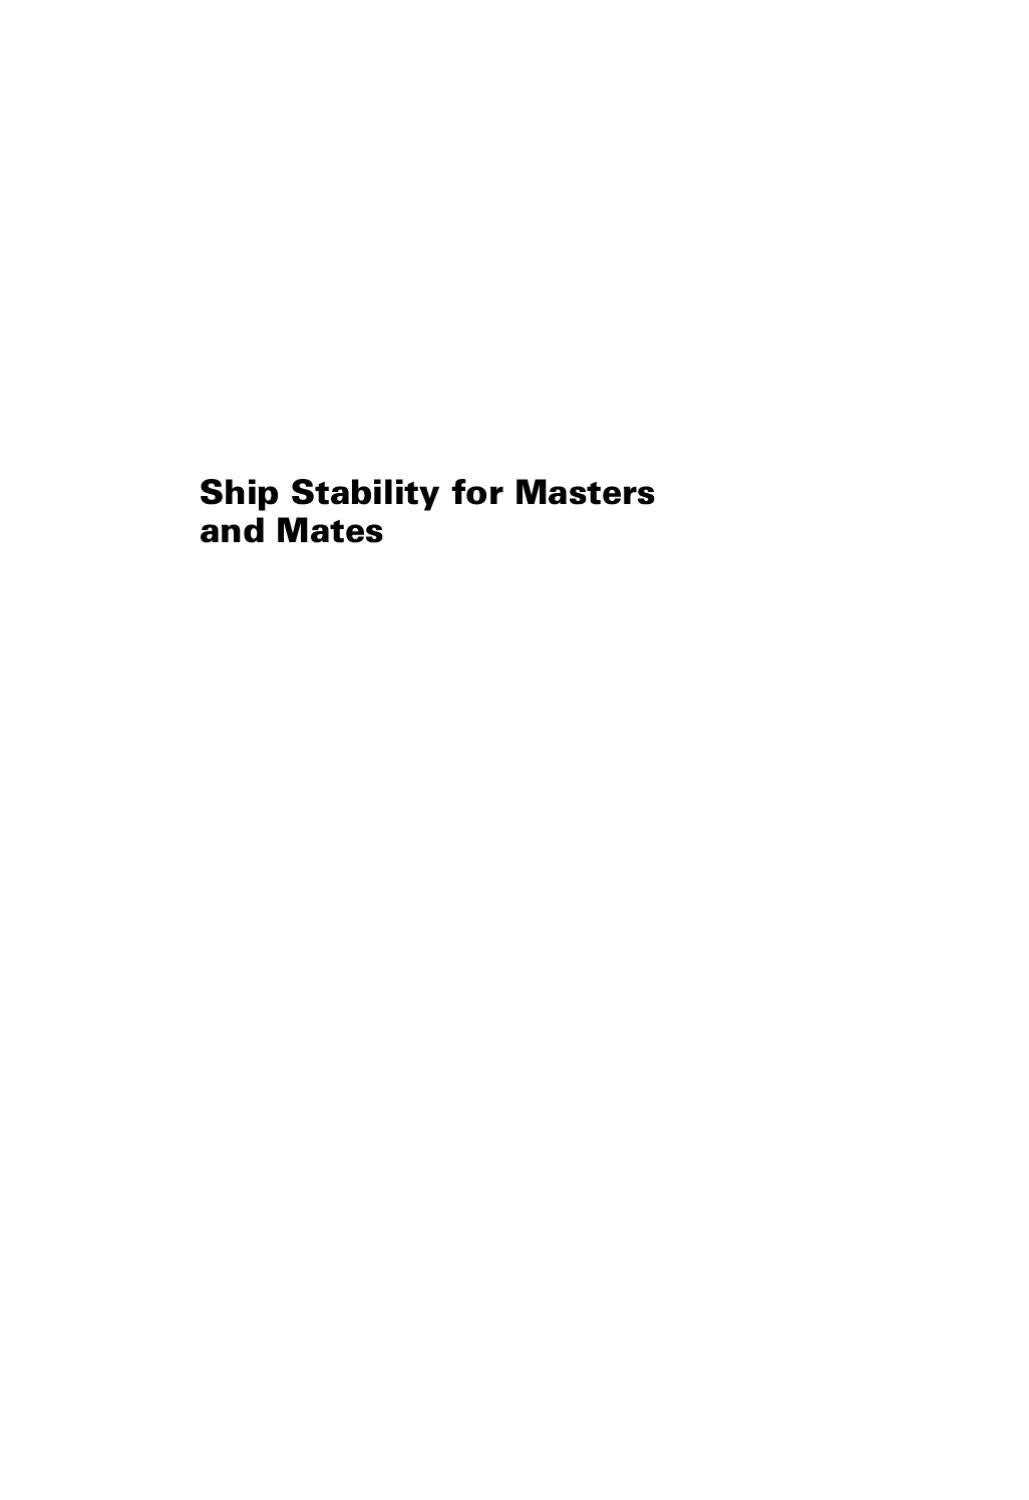 Ship Stability for Masters and Mates by john mccalum - issuu